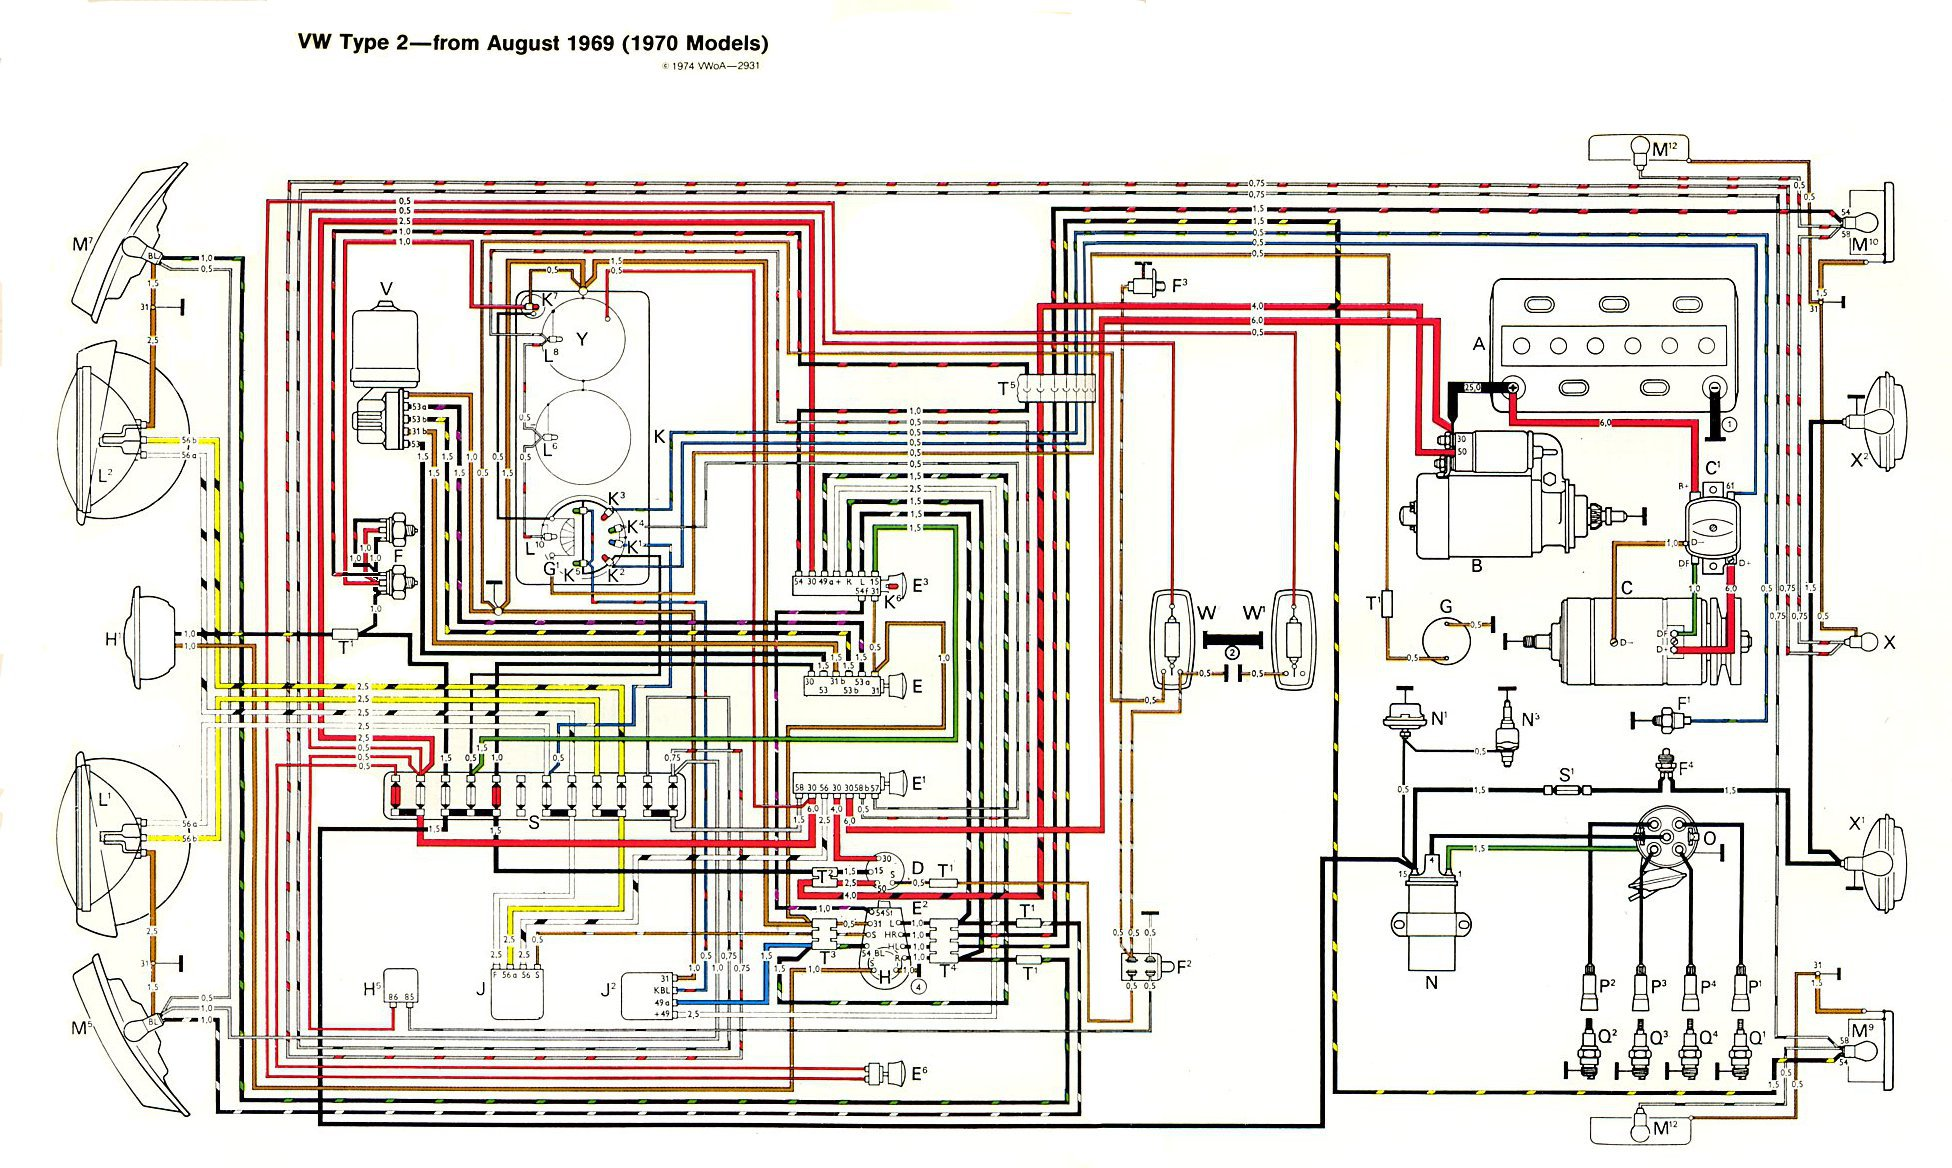 baybus_70 jeepster wiring diagram jeepster service manual pdf \u2022 free wiring 1974 porsche 911 wiring diagram at bakdesigns.co